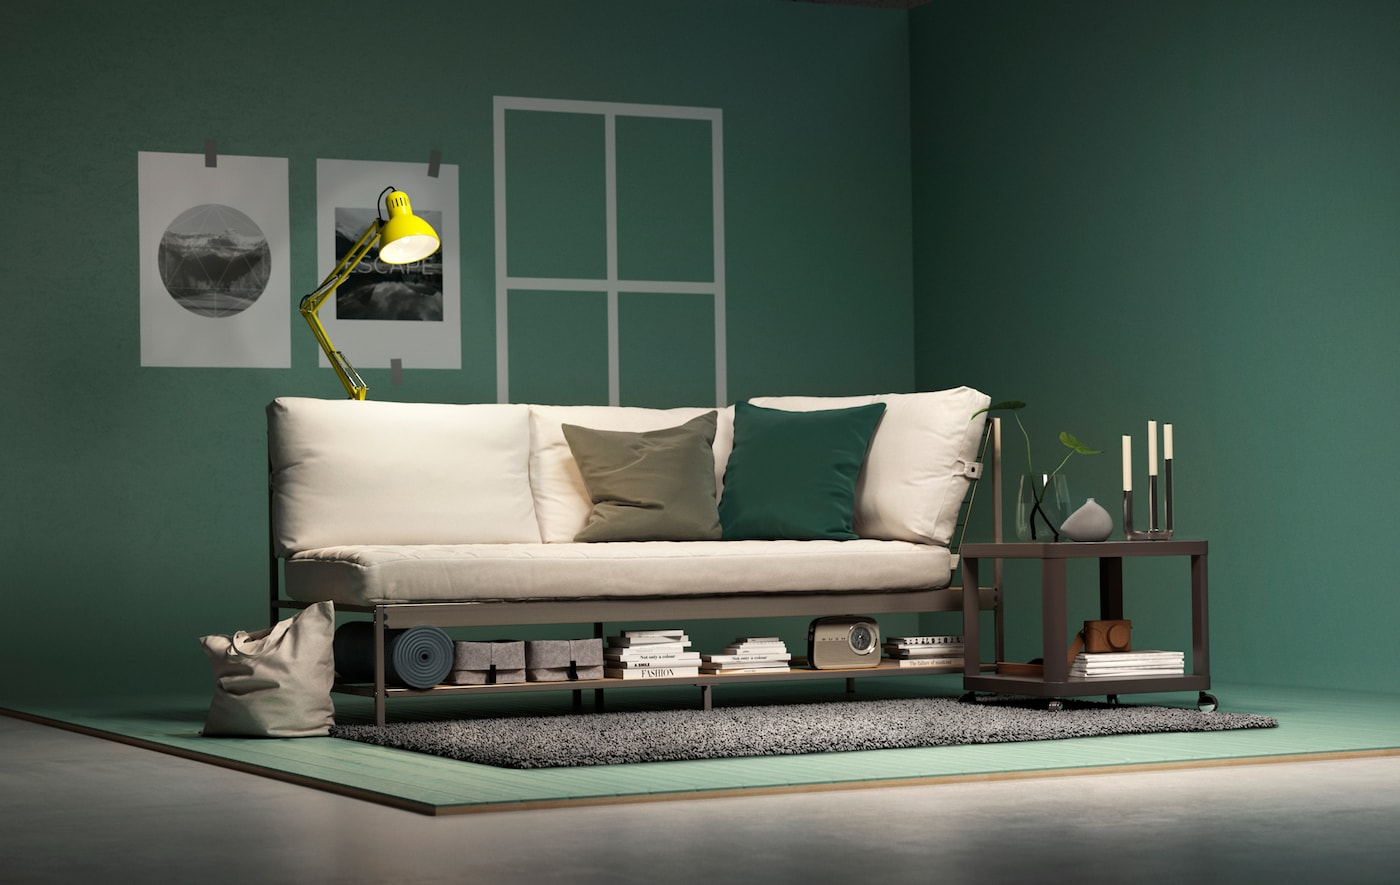 An IKEA EKEBOL sofa, TINGBY side table and TERTIAL lamp in a green living room